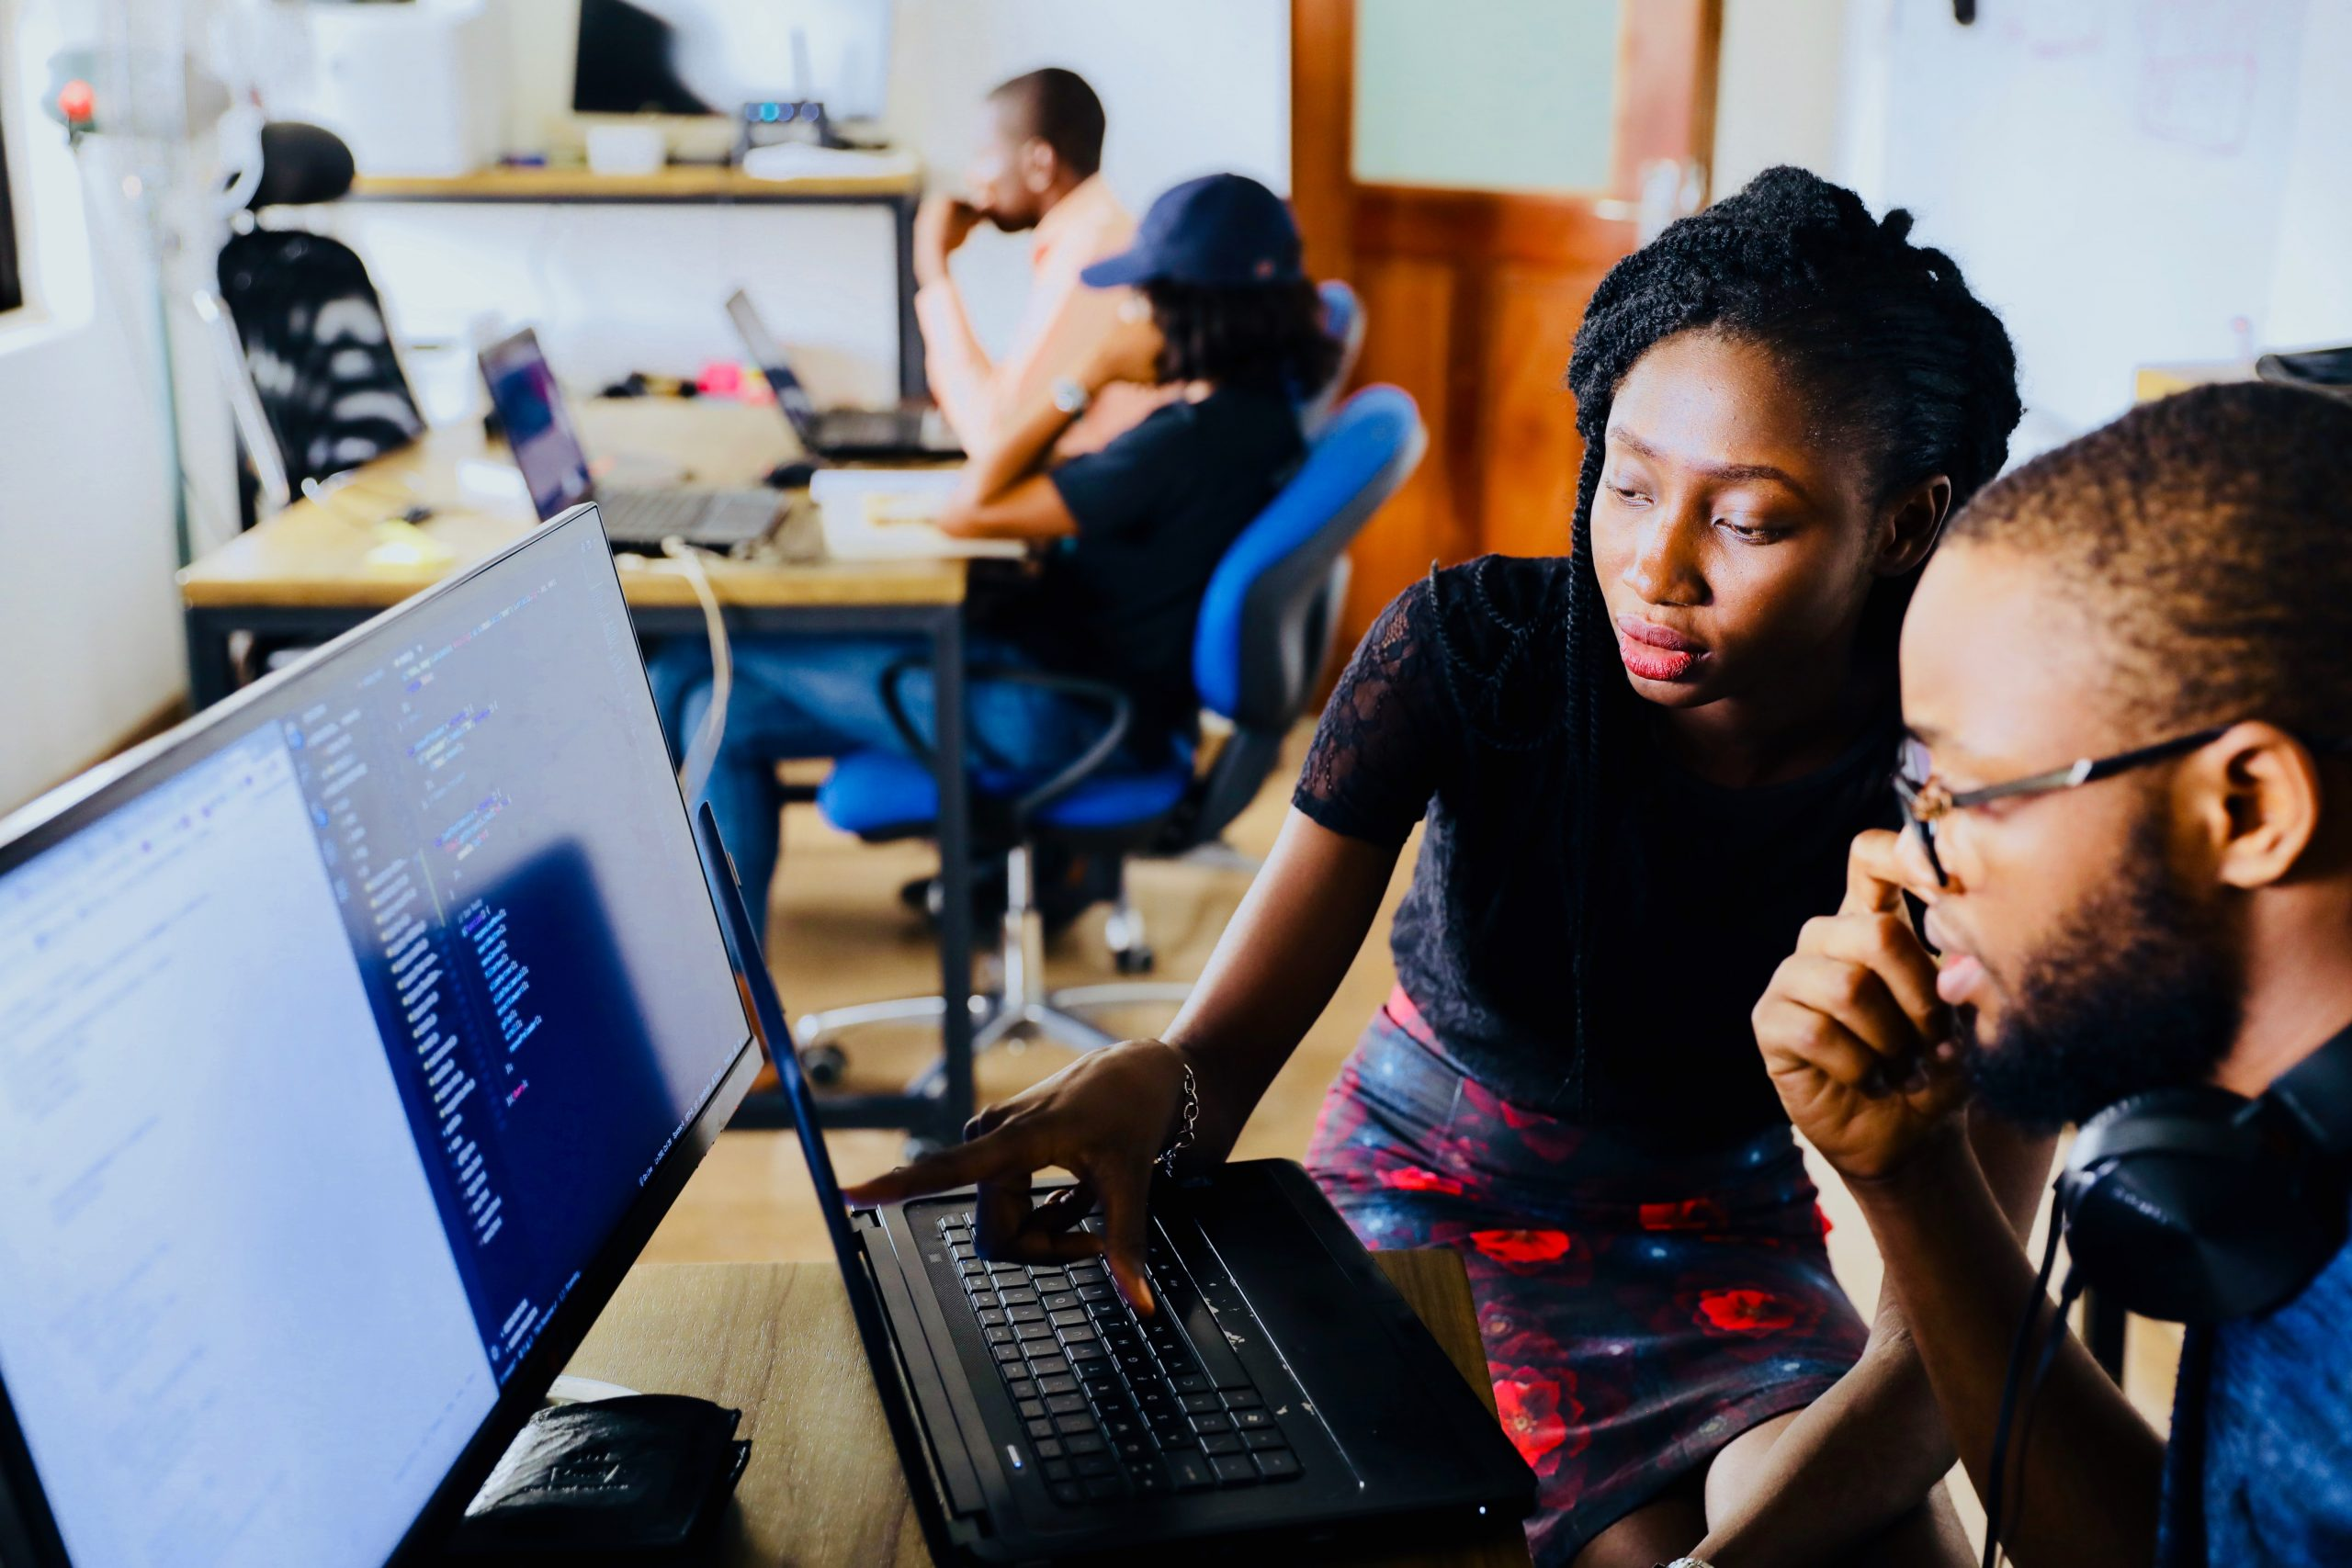 2 People working together on startup business project photographed by Nesa by Makers sourced off of Unsplash